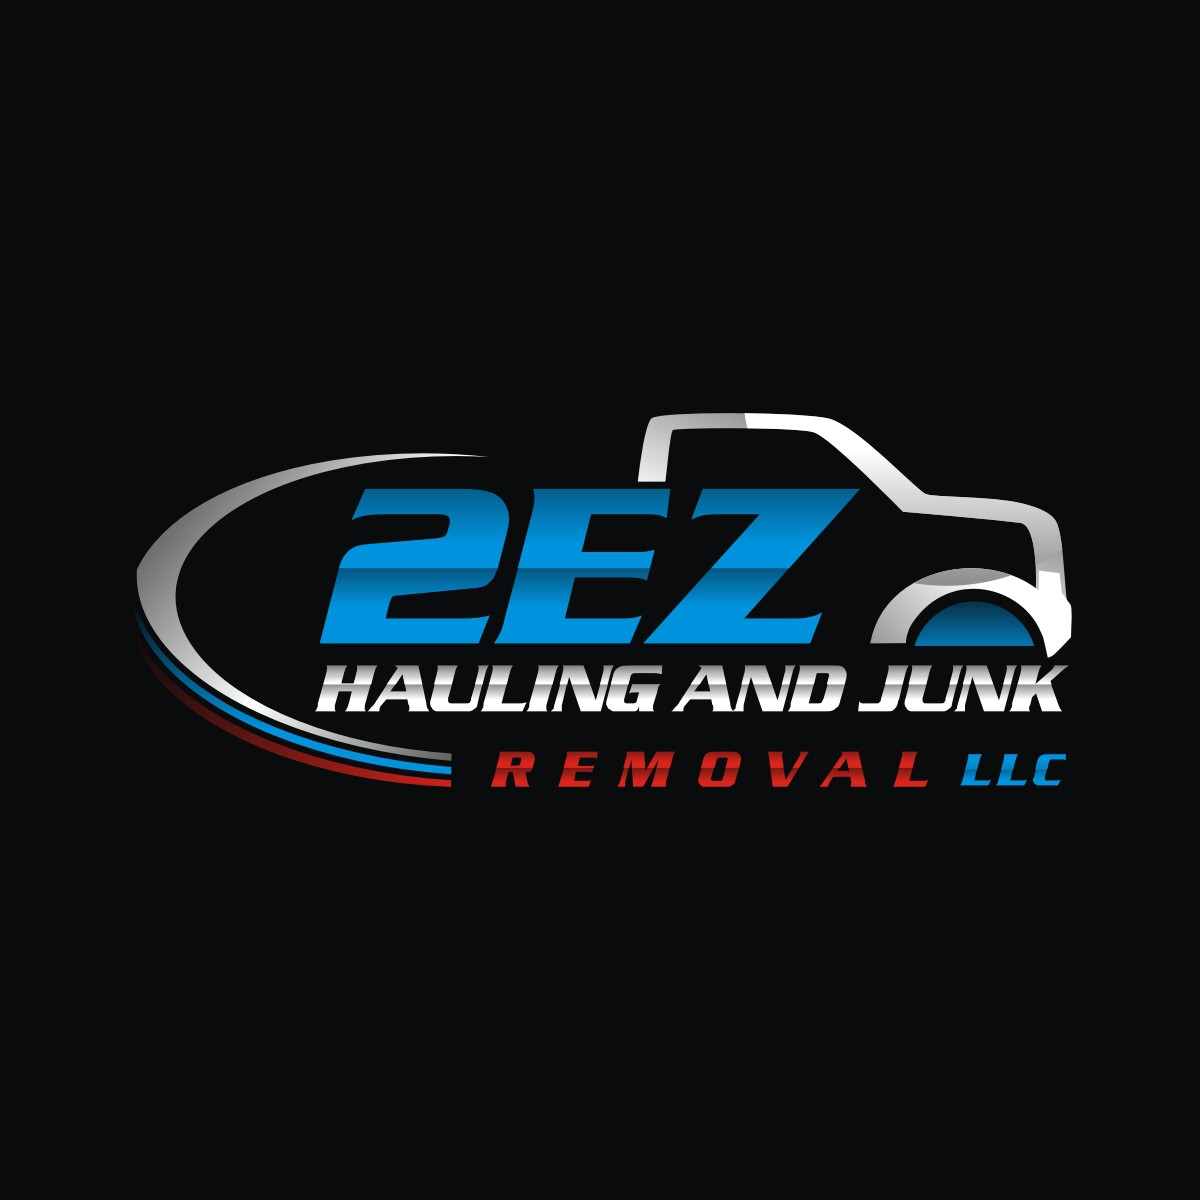 Looking for my hauling company logo to pop